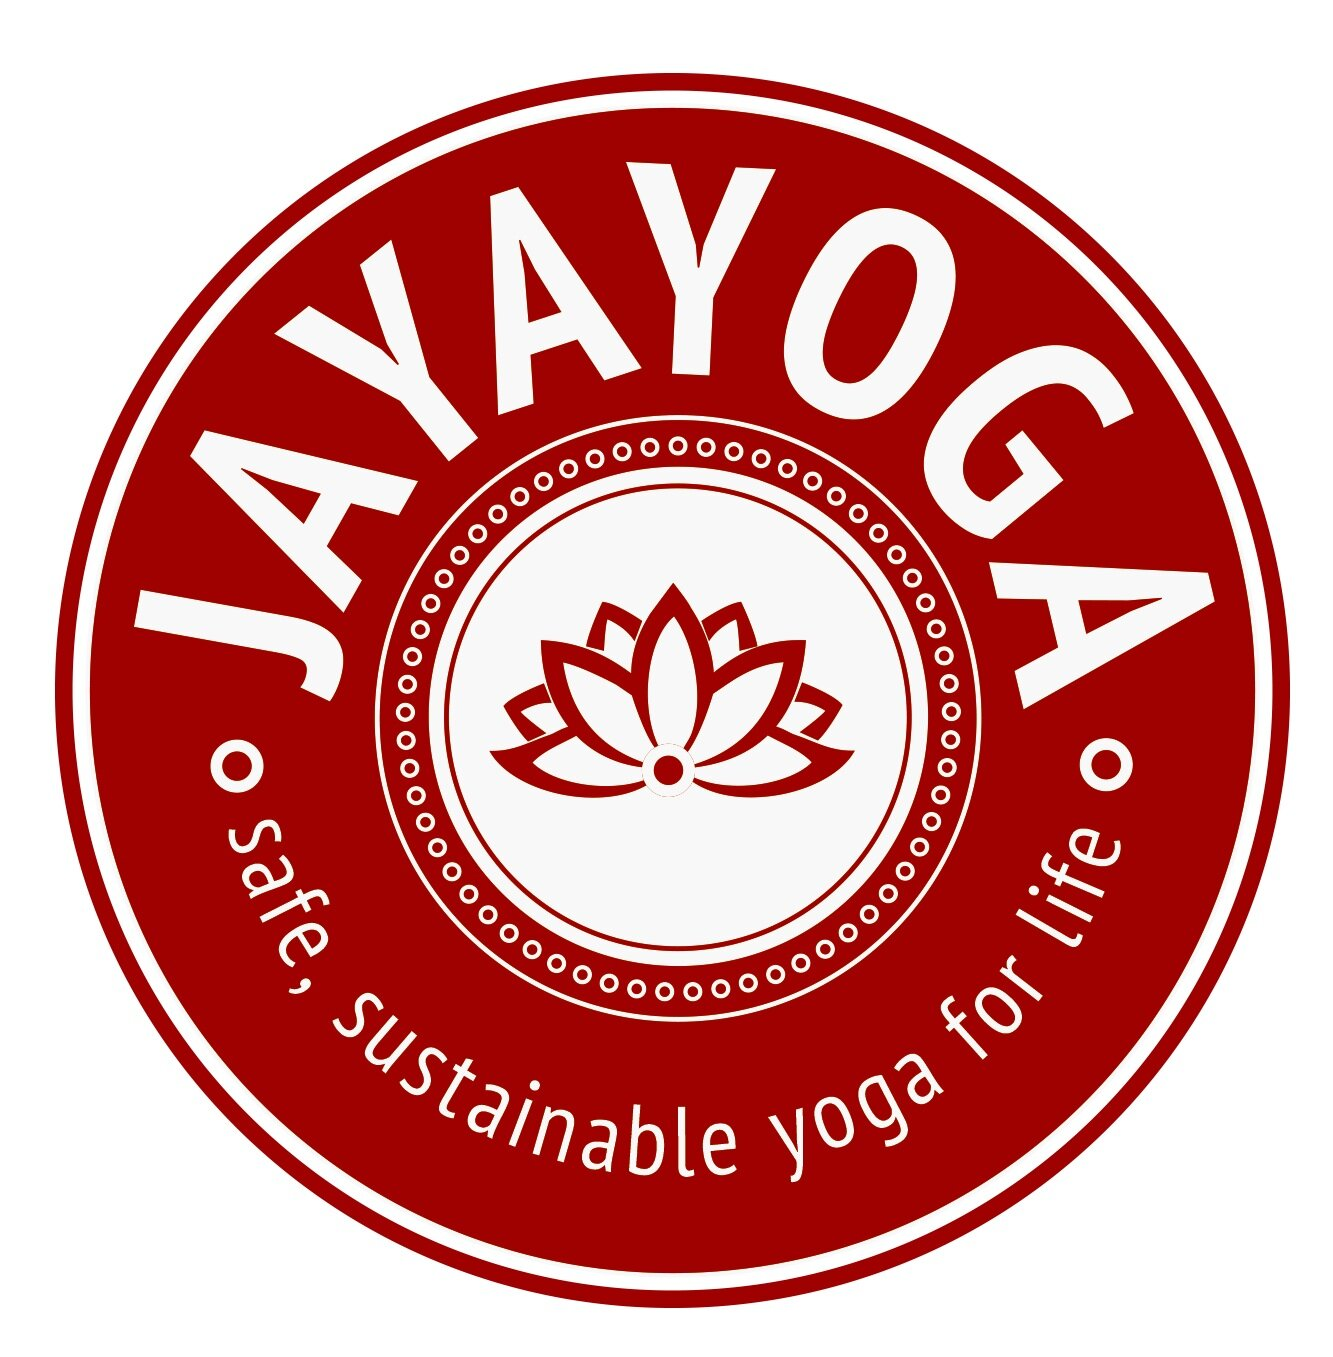 Jayayoga NZ - safe sustainable yoga for life